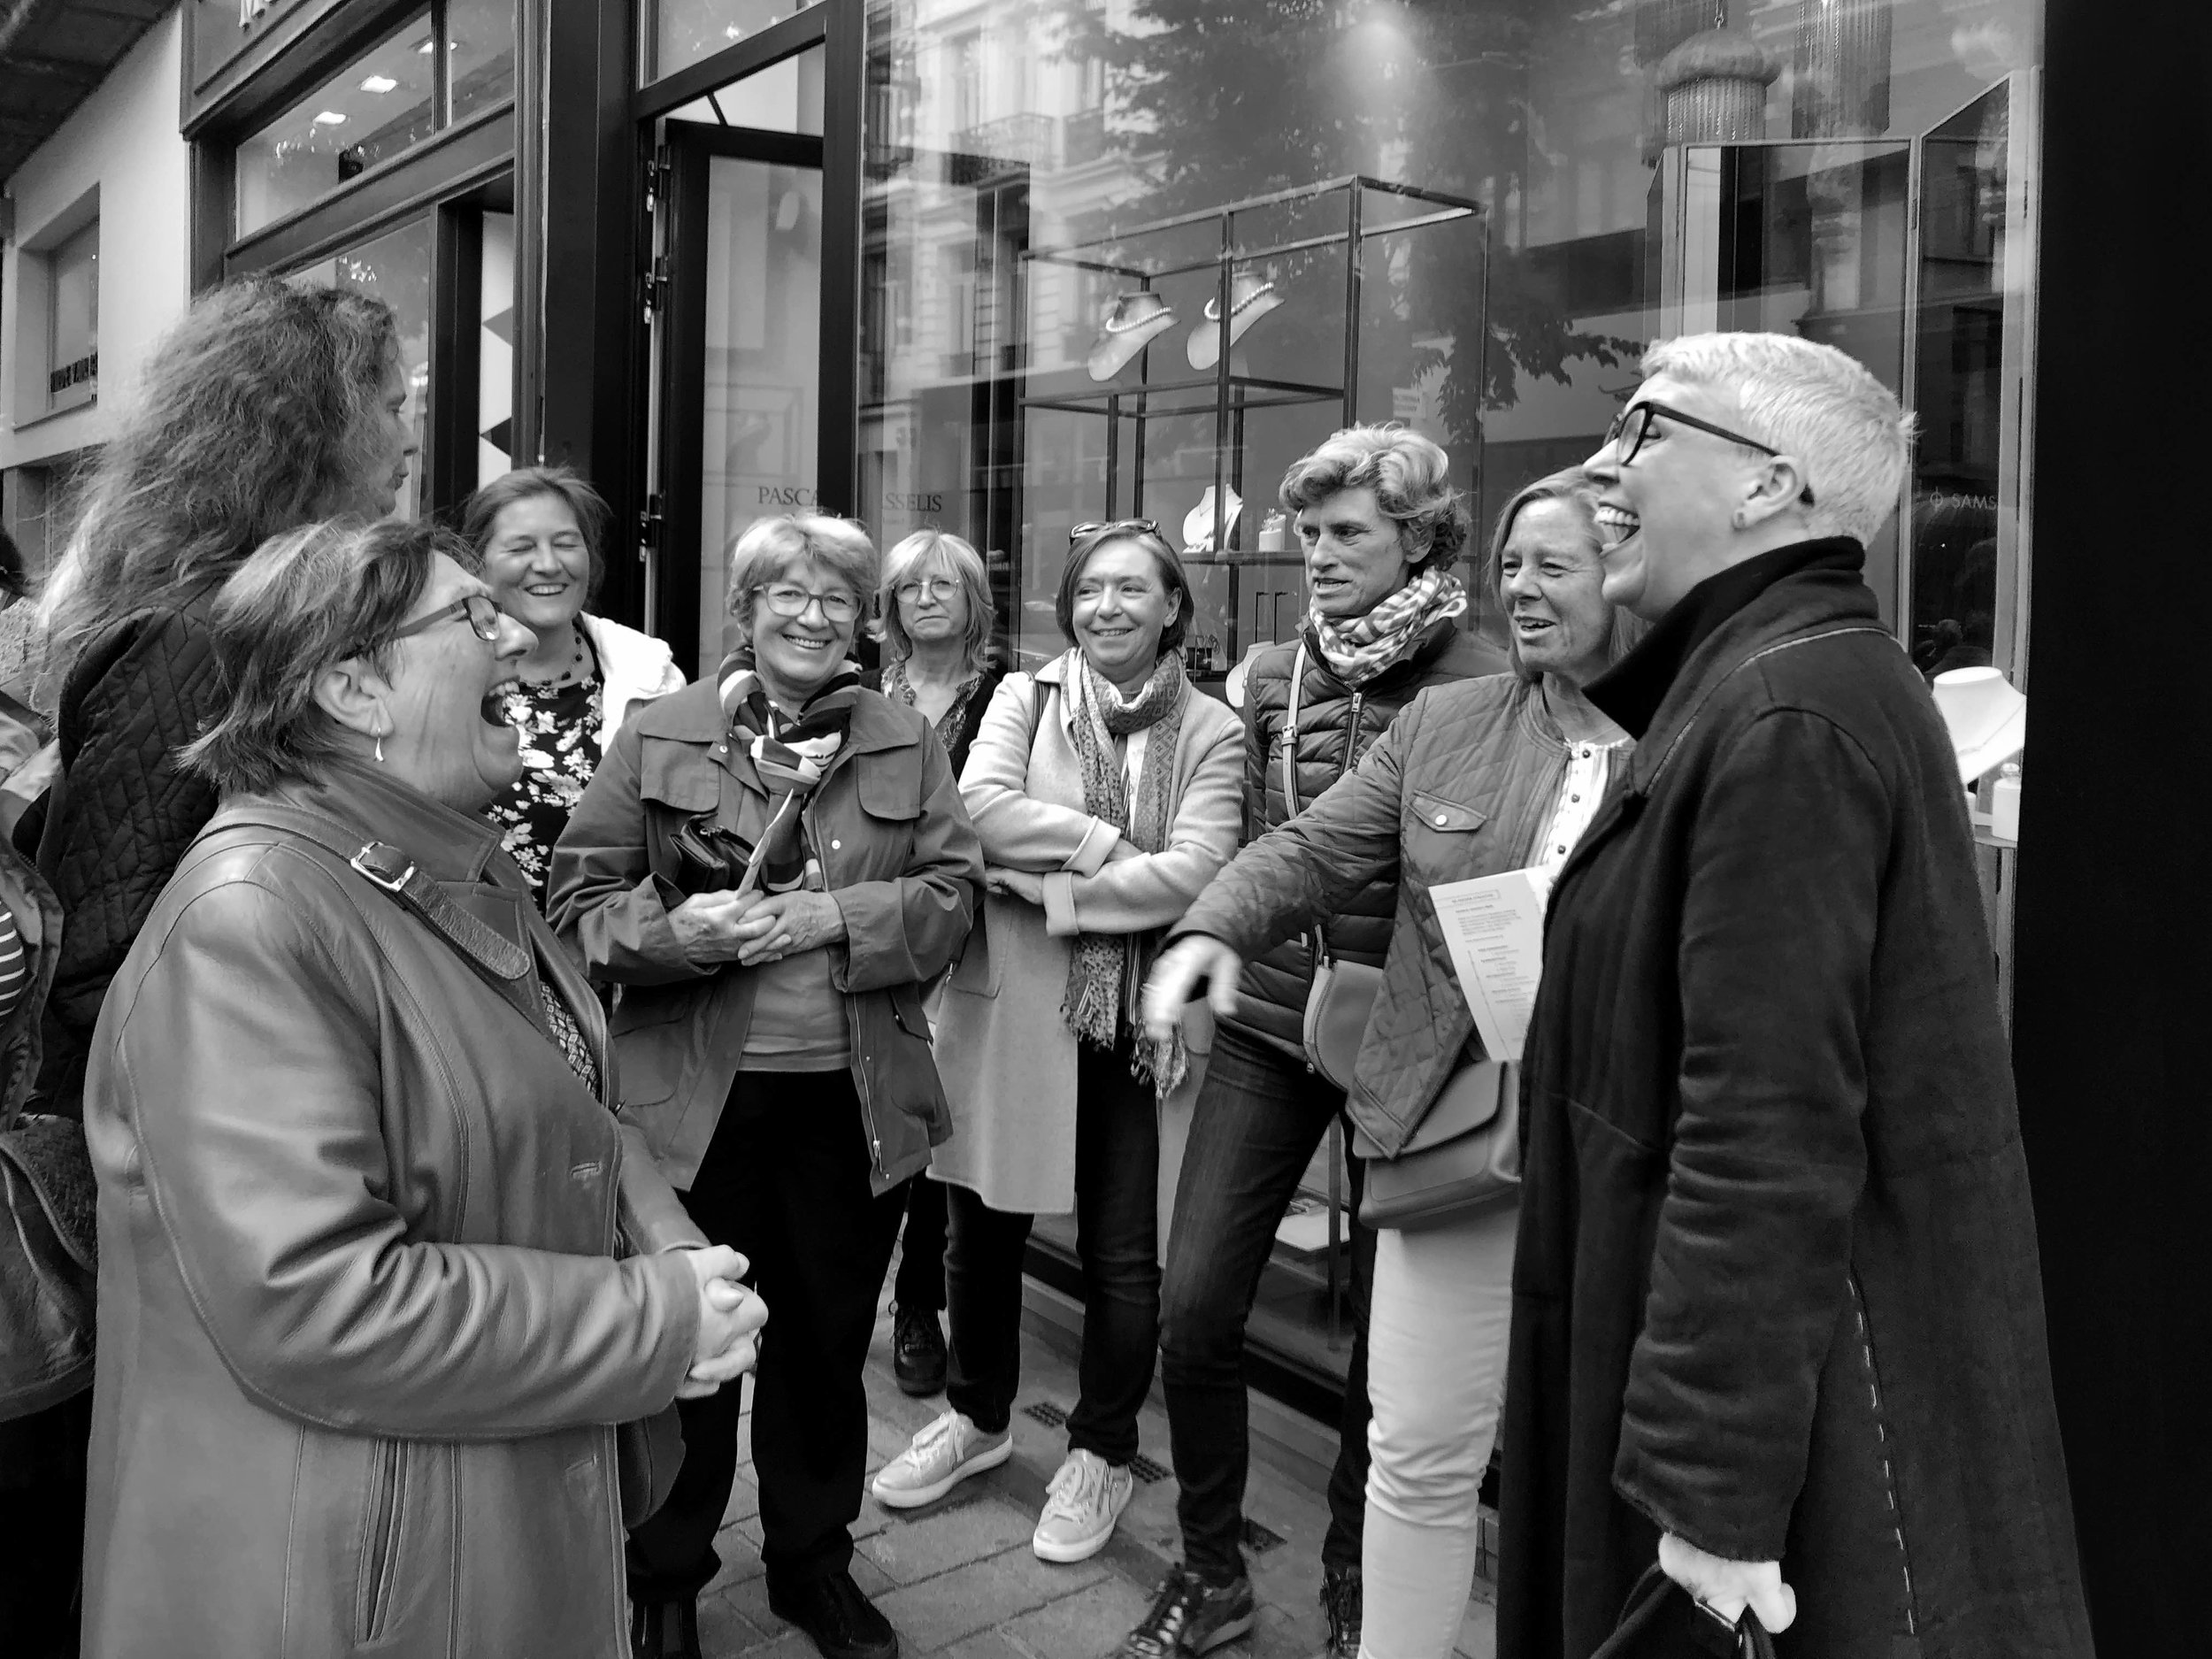 Guided Tours - Follow our guide through the Old City Centre or dynamic Fashion District and discover why our city is famous for Diamonds, jewellery and fashion…